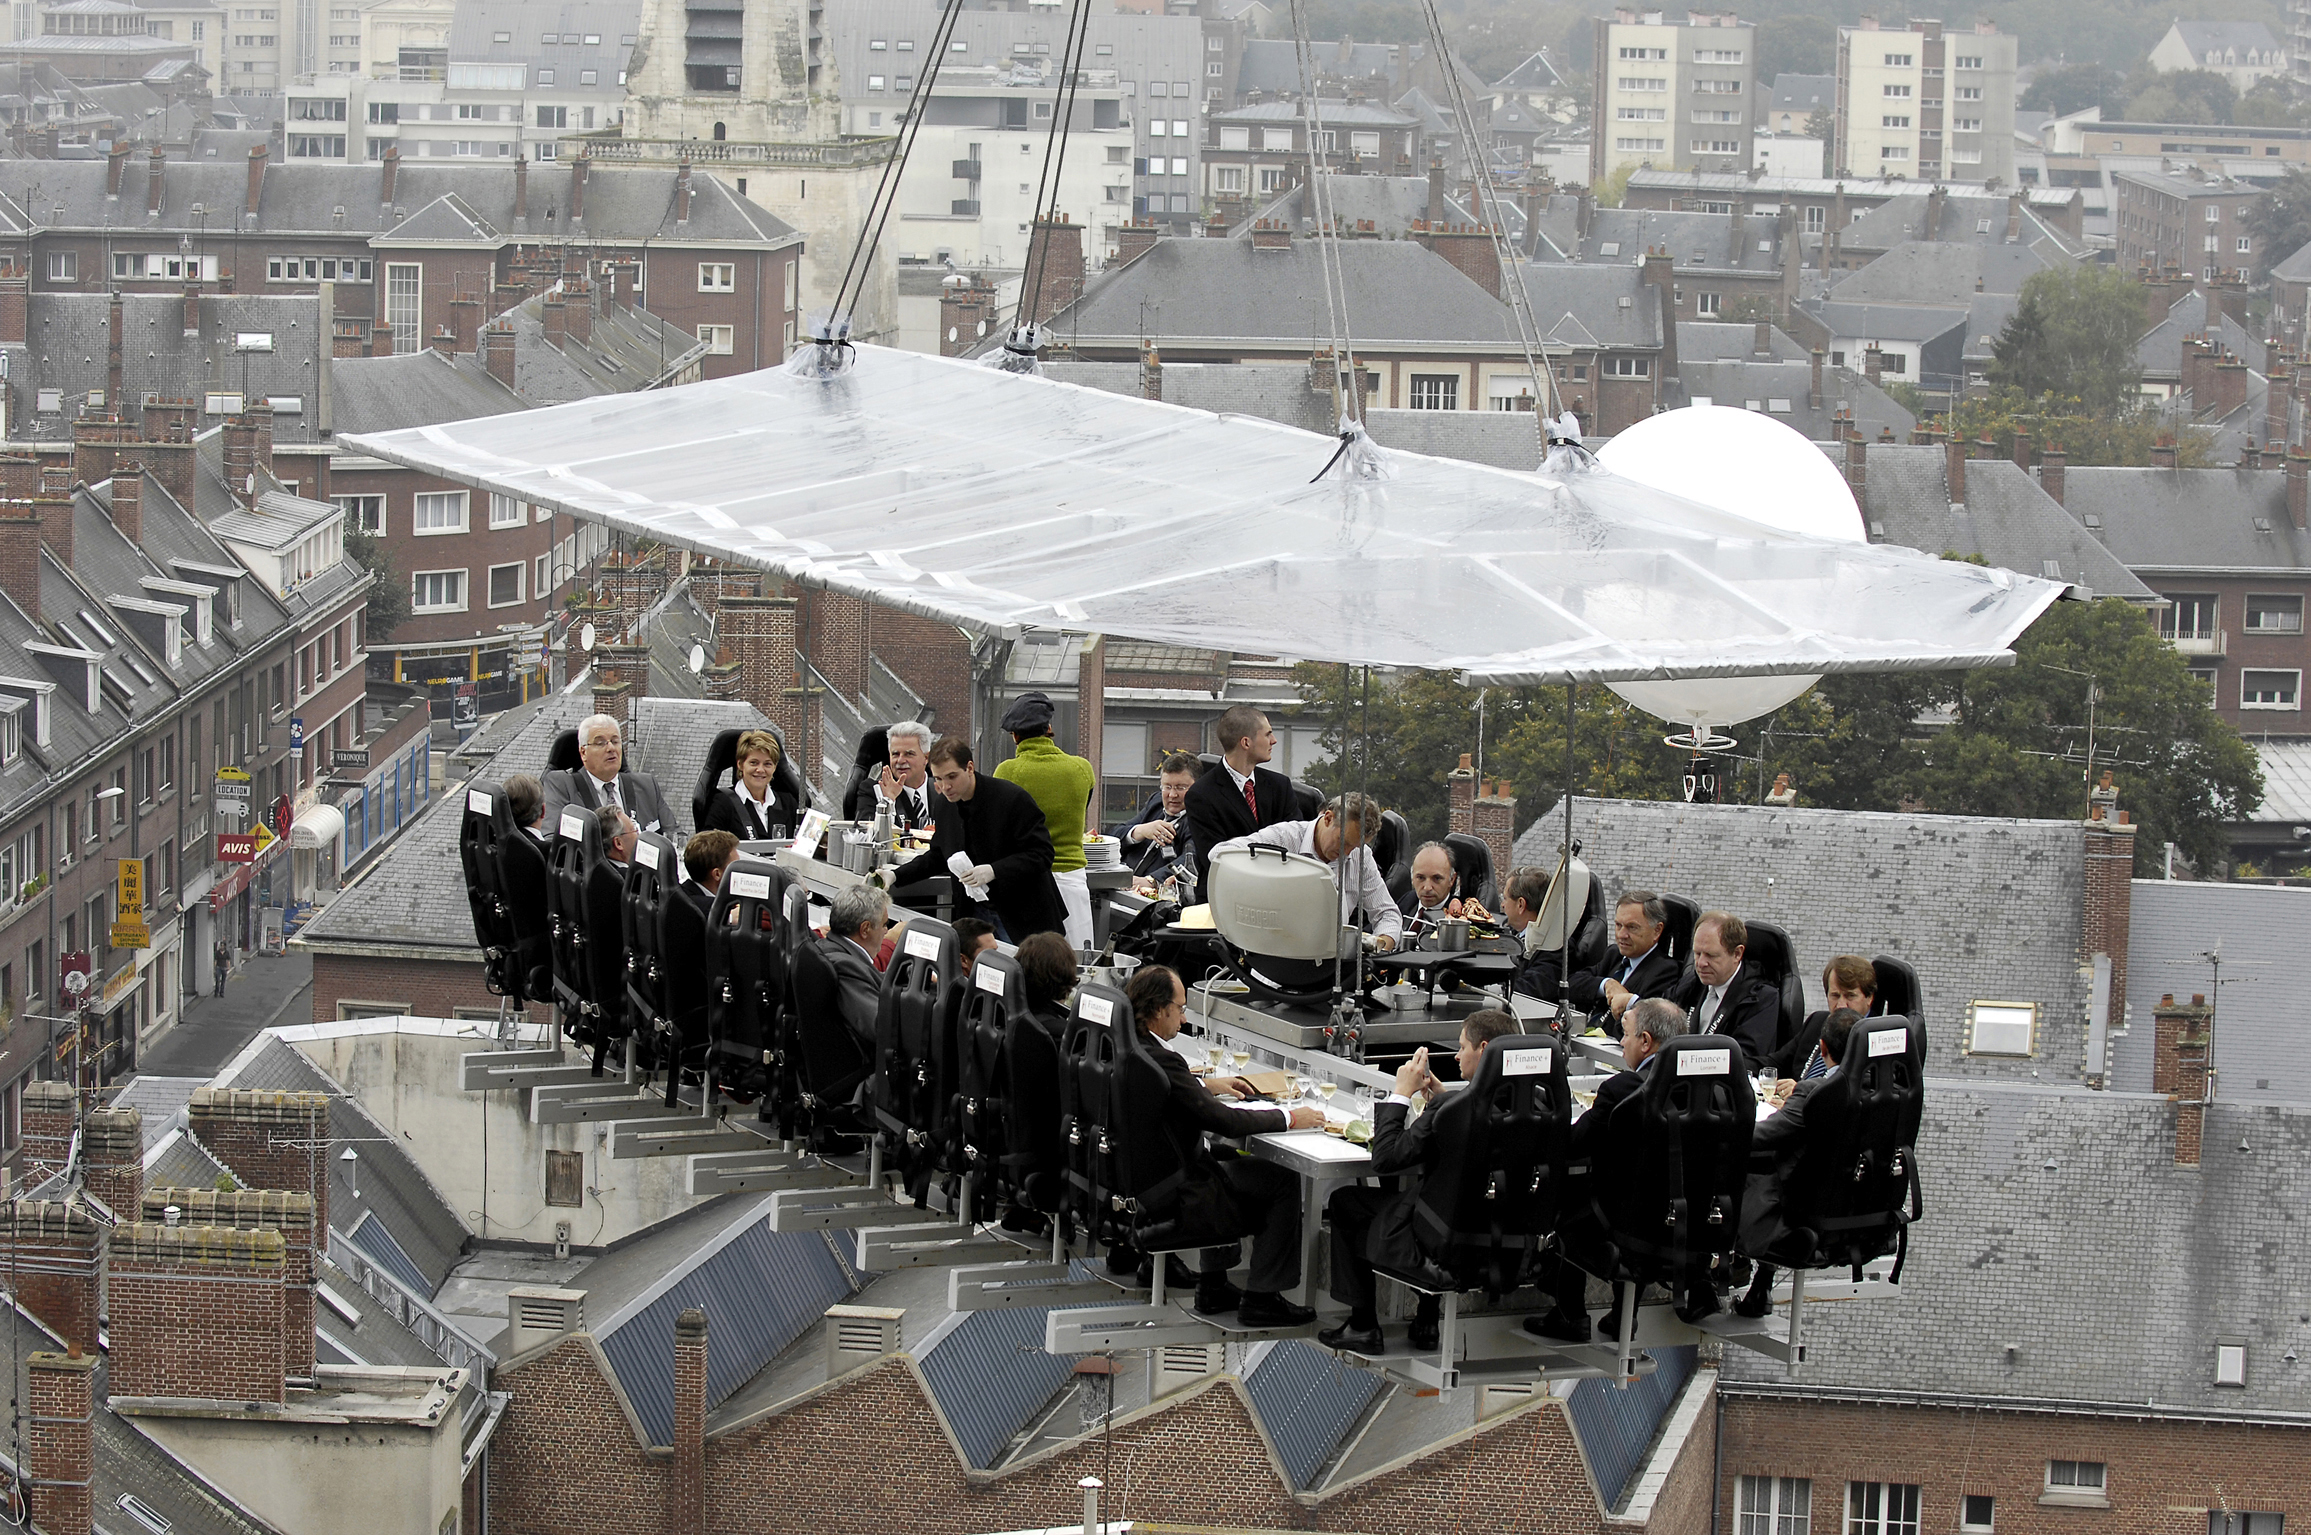 High-class dining: Eating dinner in the sky